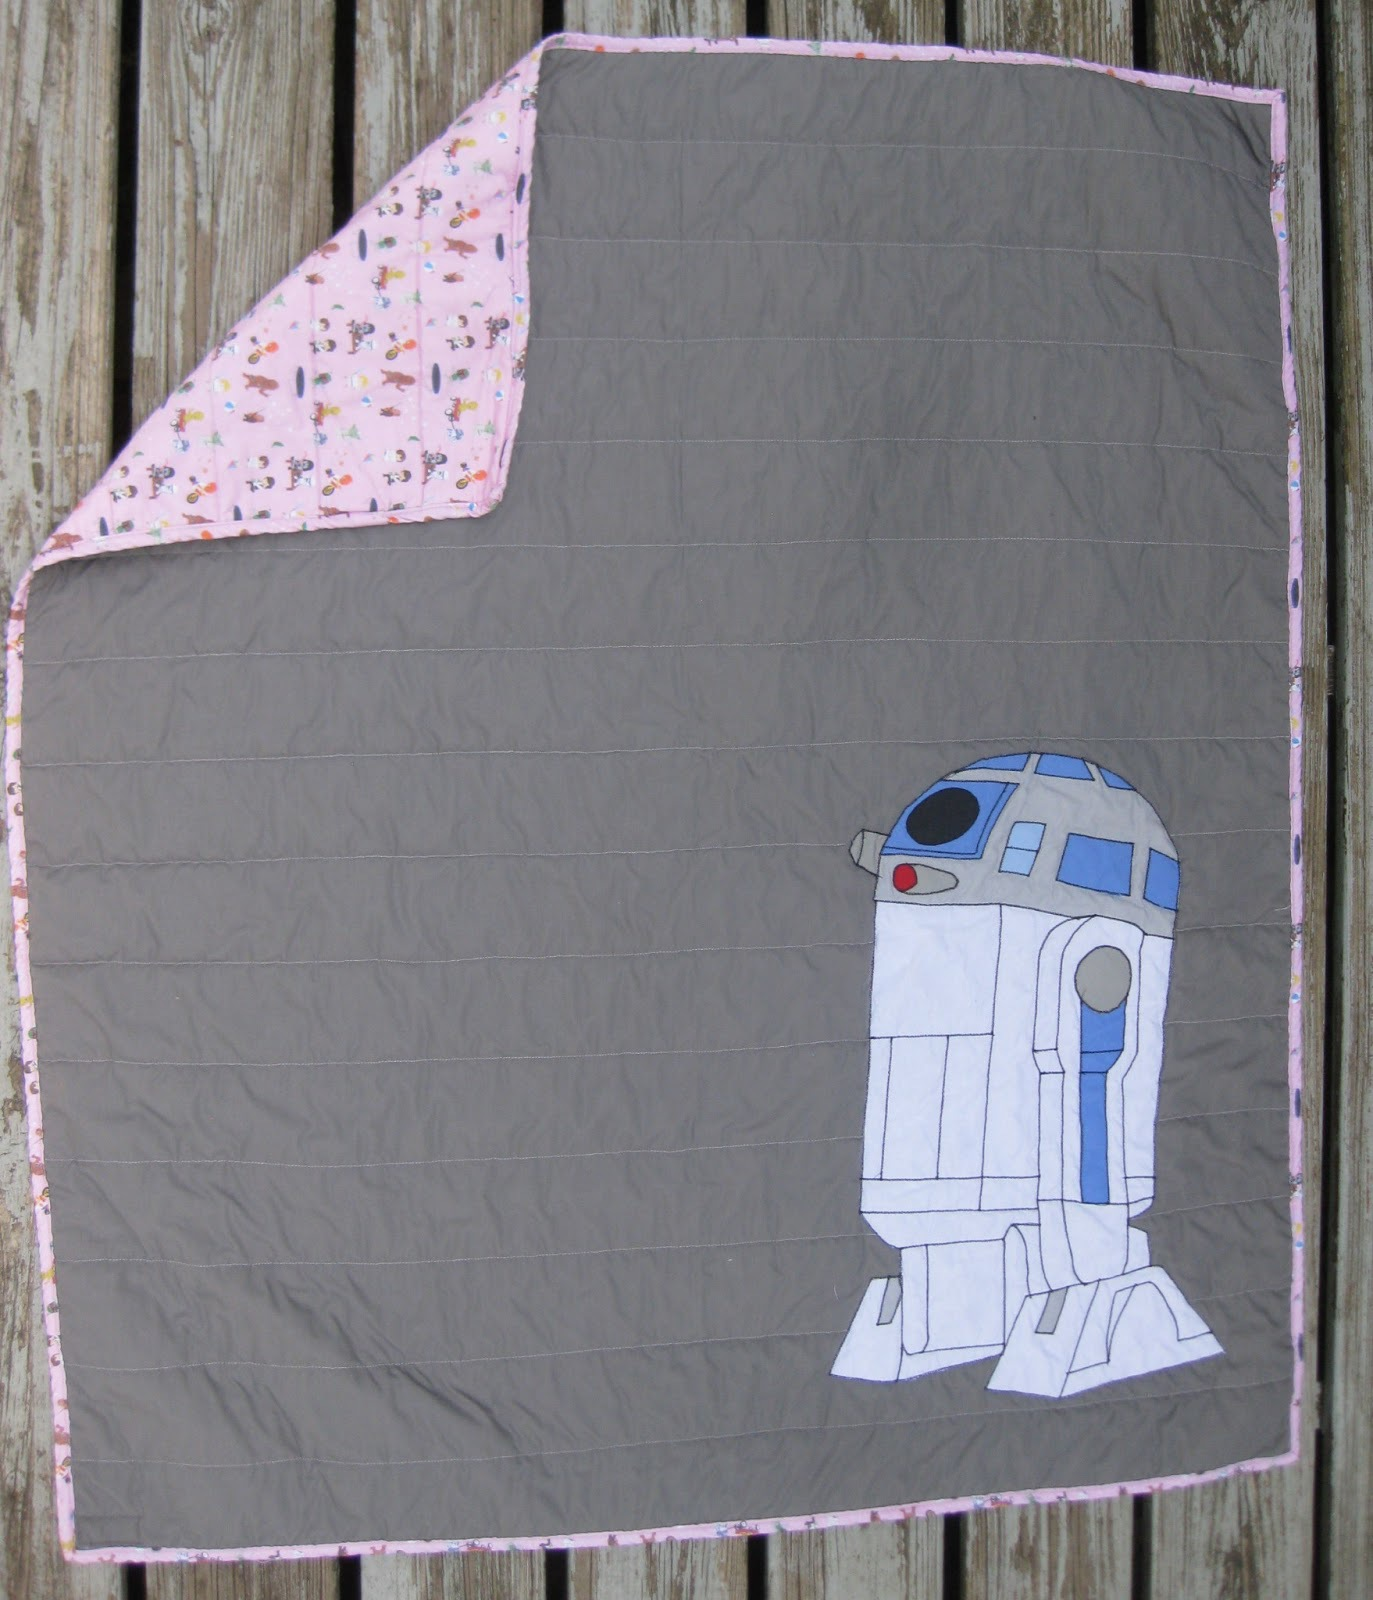 Star Wars quilt with R2D2